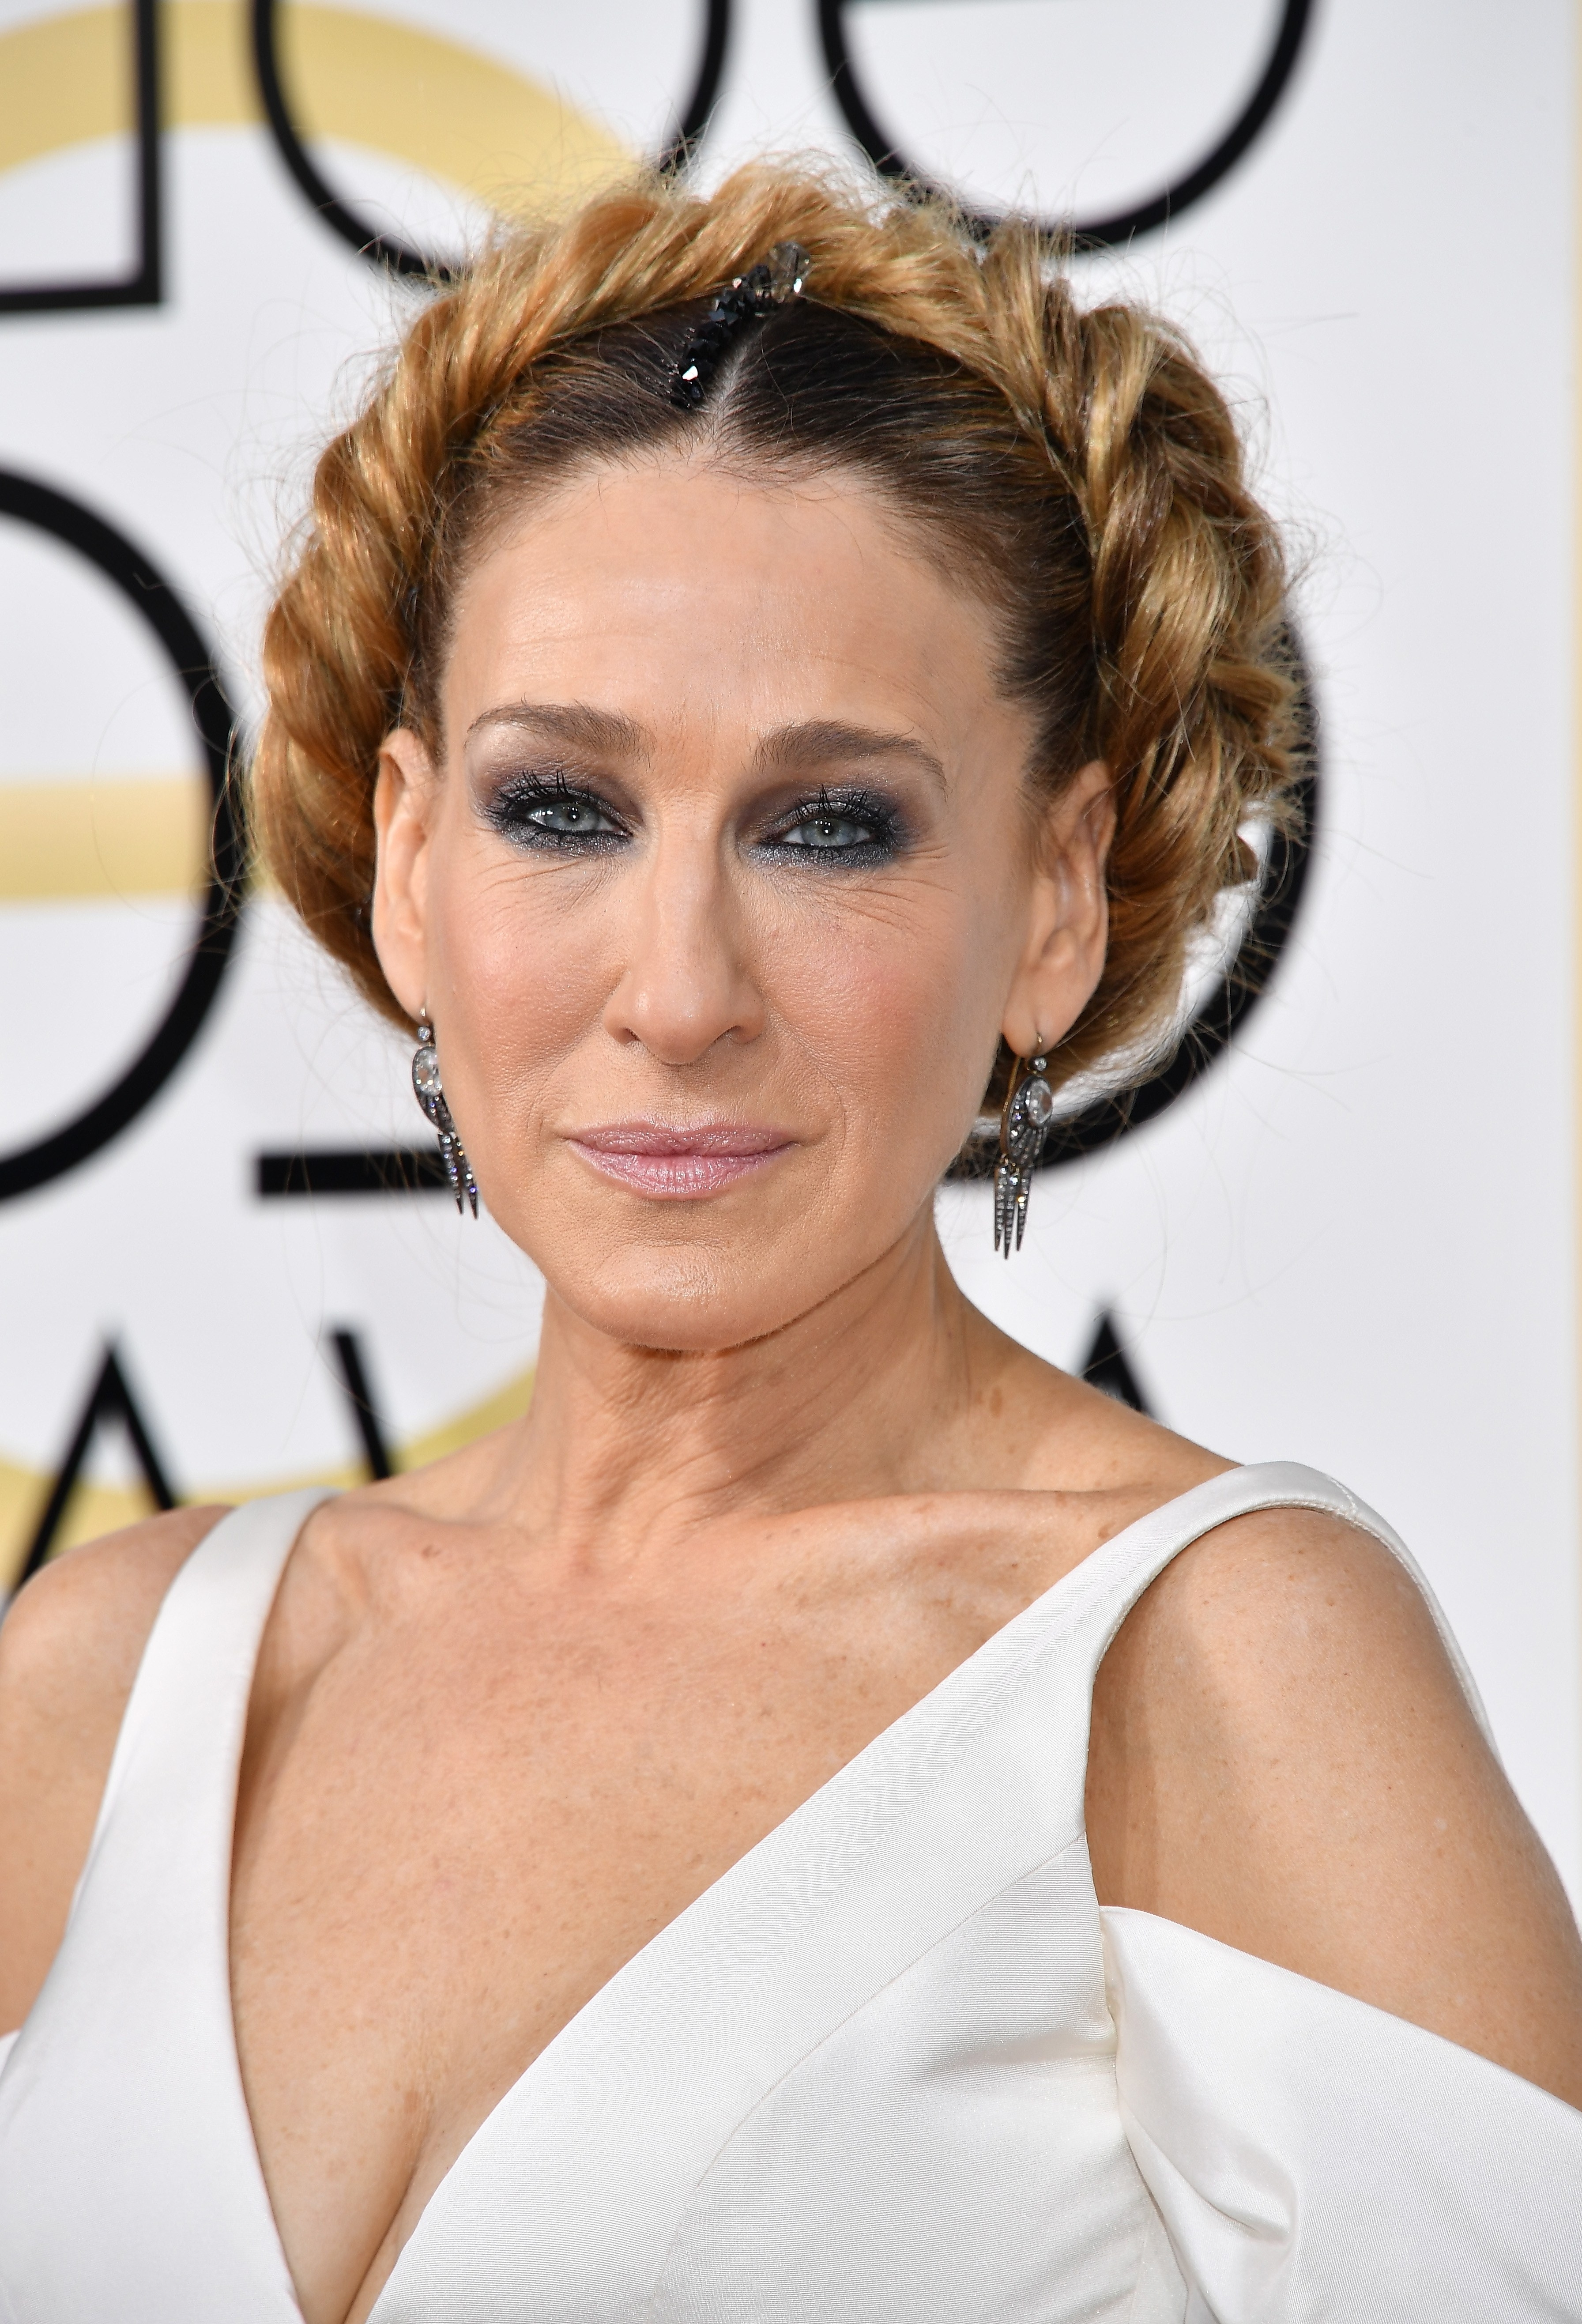 Golden Globes 2017: Sarah Jessica Parker Pays Tribute To Carrie Pertaining To Famous Red Carpet Braided Hairstyles (Gallery 12 of 15)